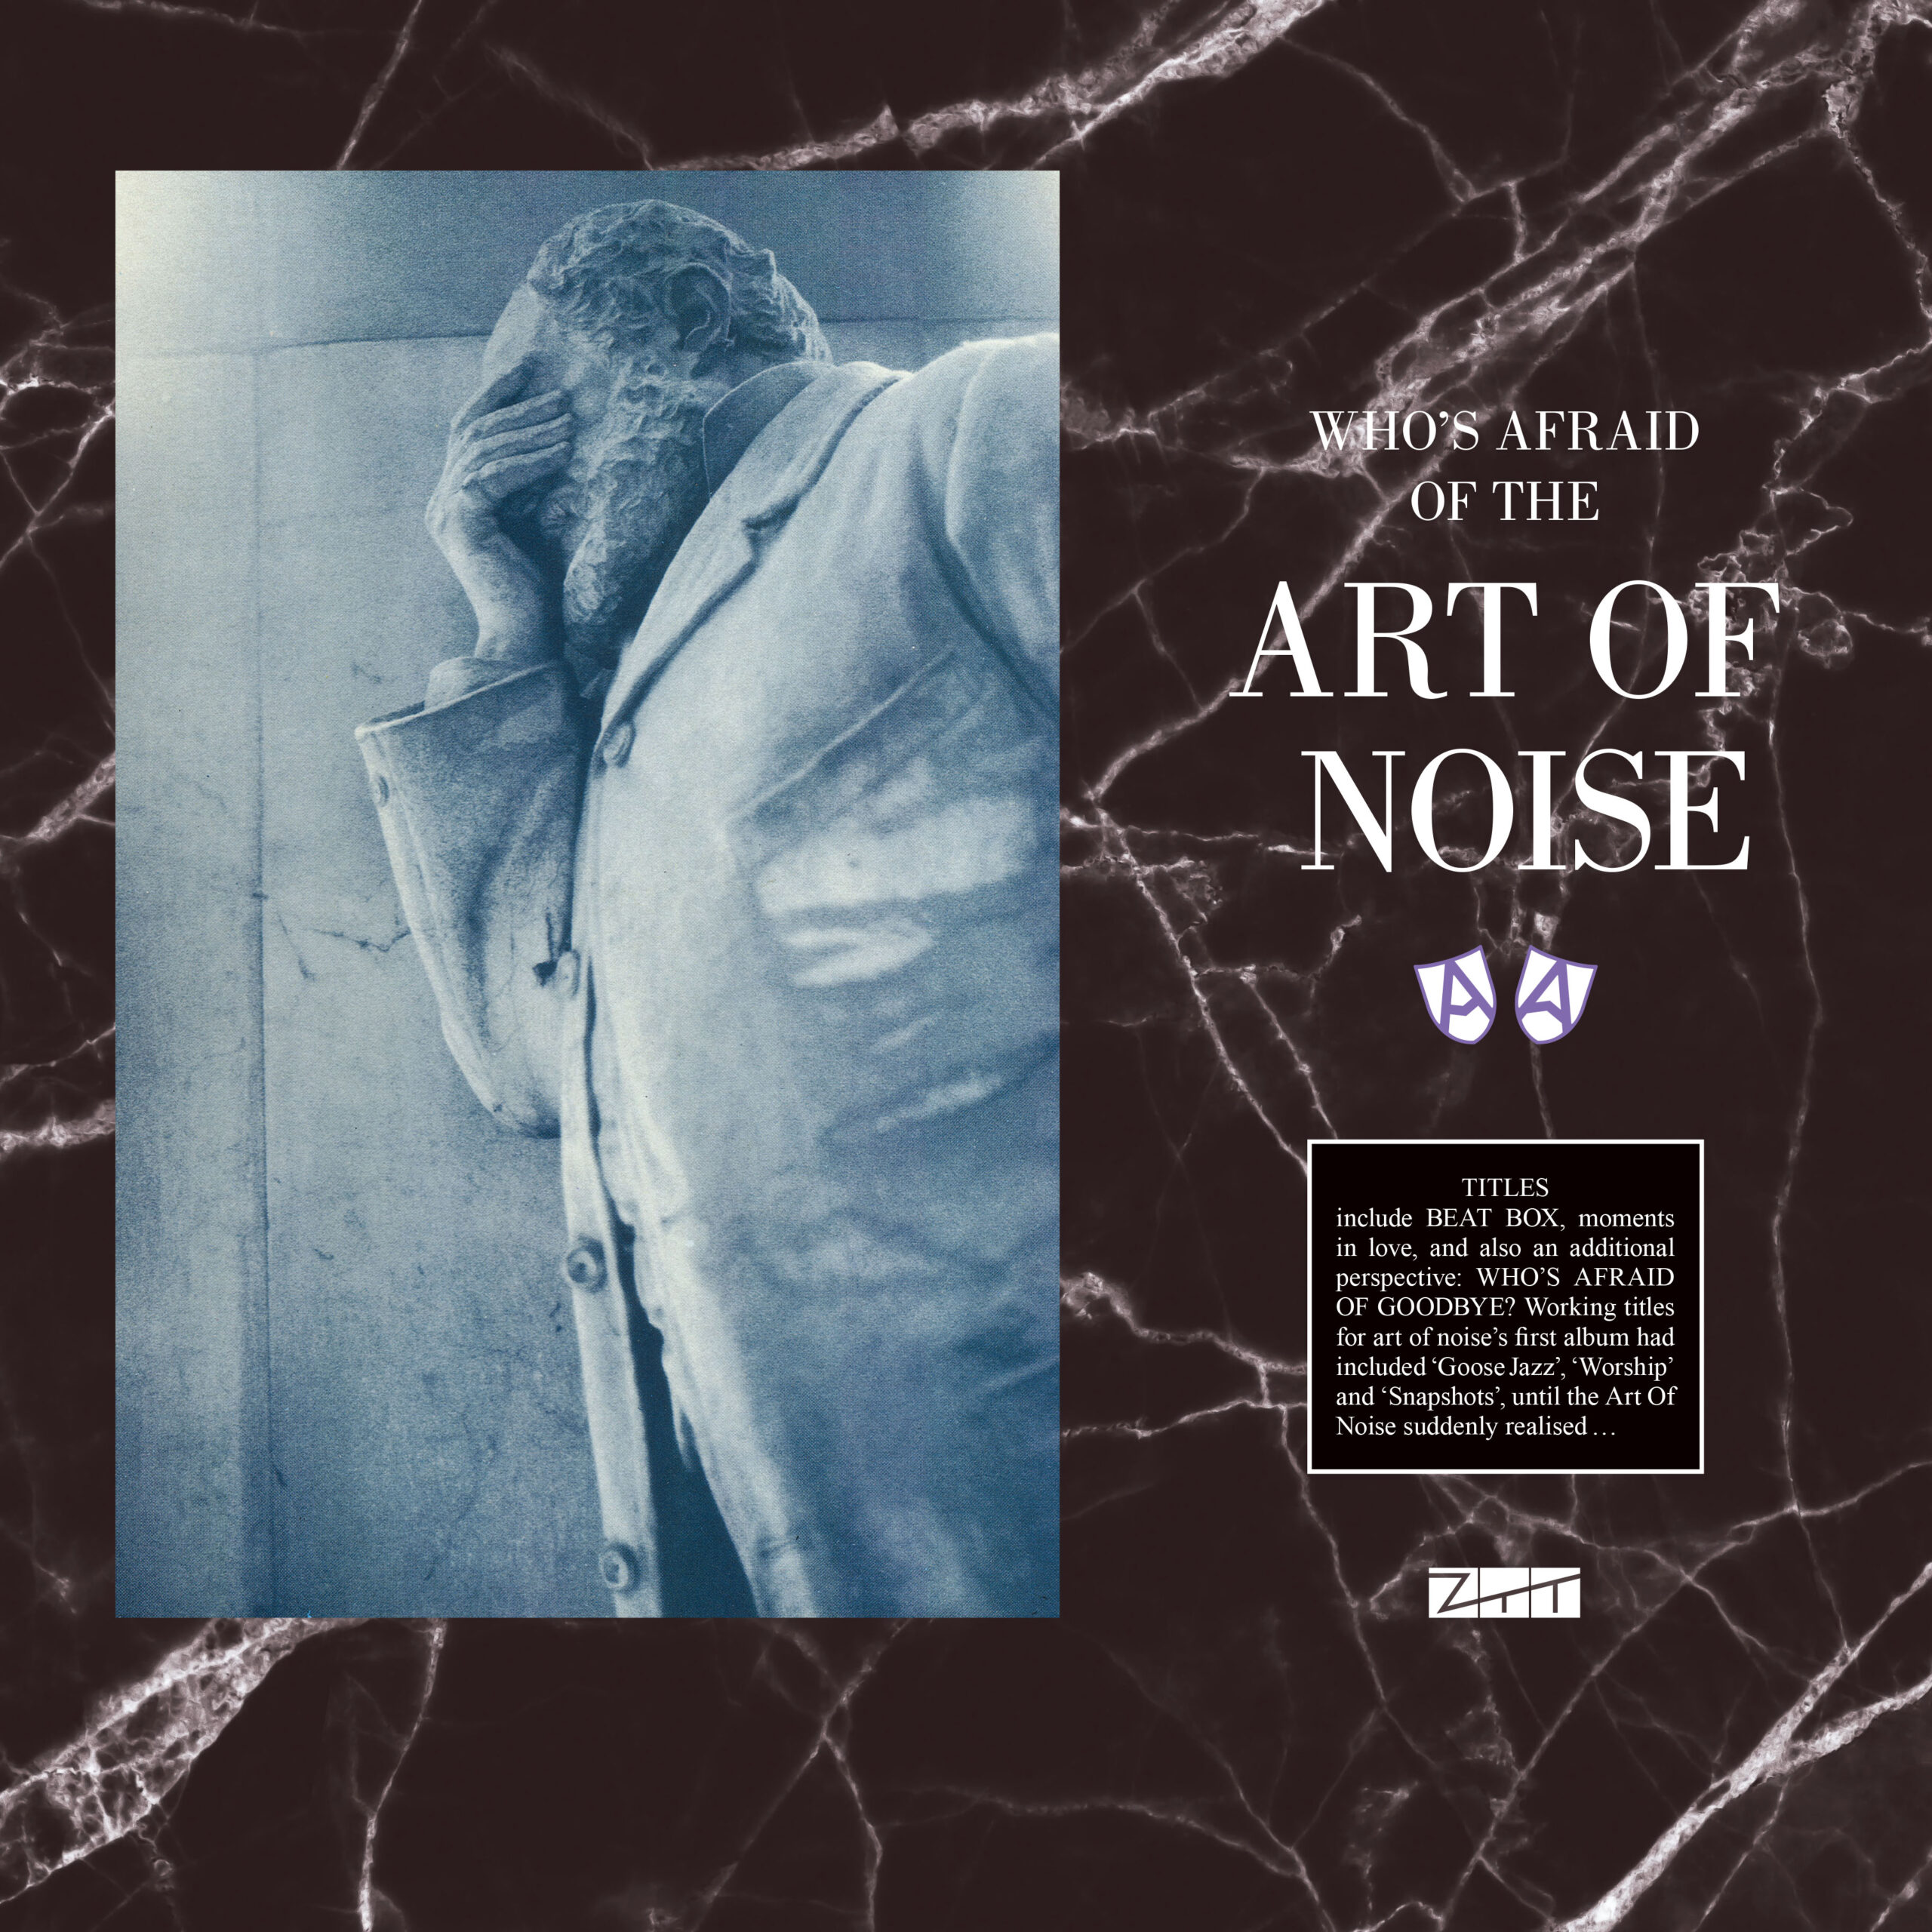 Art Of Noise'Who's Afraid of the Art Of Noise?' / 'Who's Afraid Of Goodbye?'